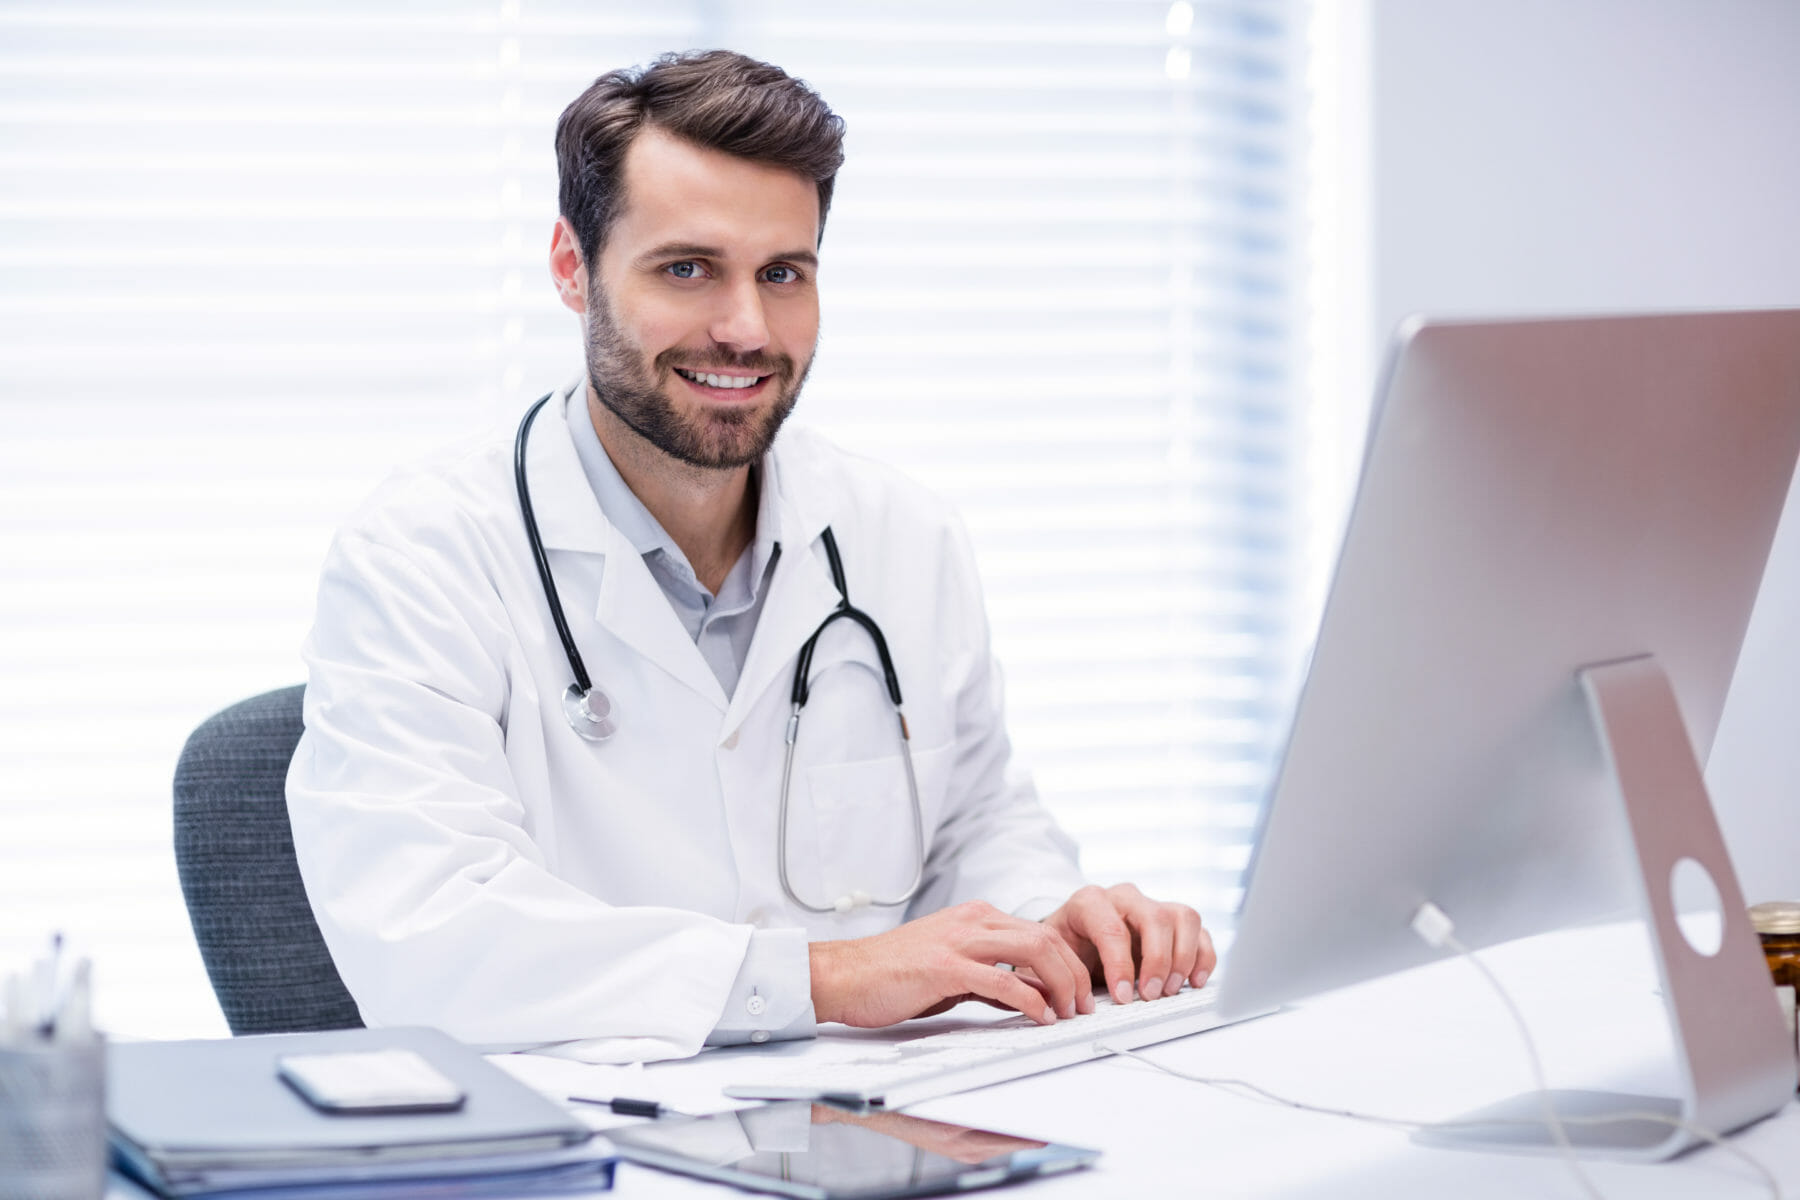 Healthcare List of Job Sites & Job Boards - Job Seeker Resources - JobStars Resume Writing